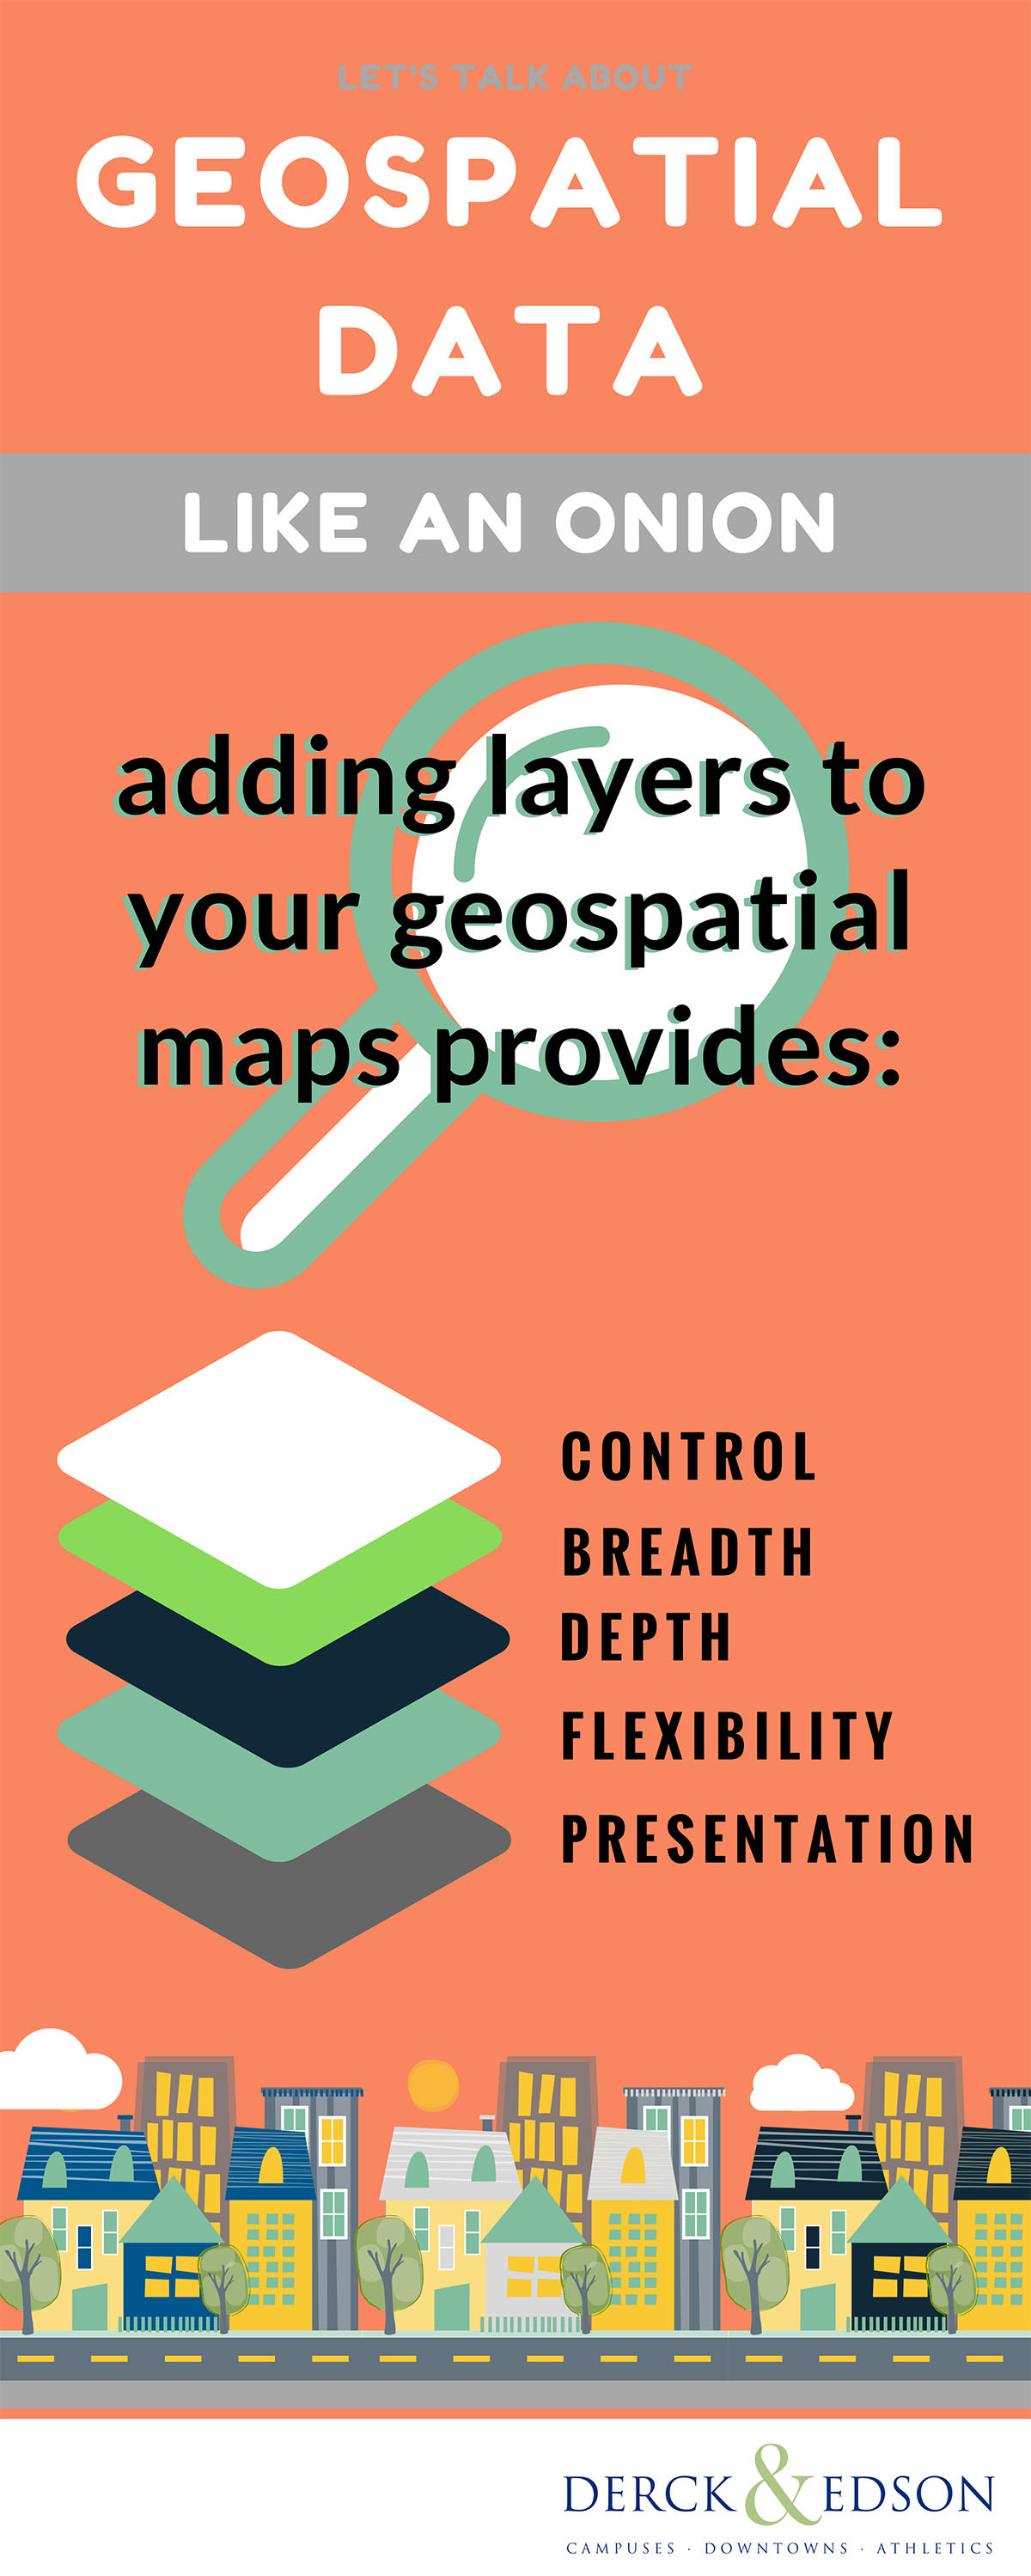 Geospatial Data layers